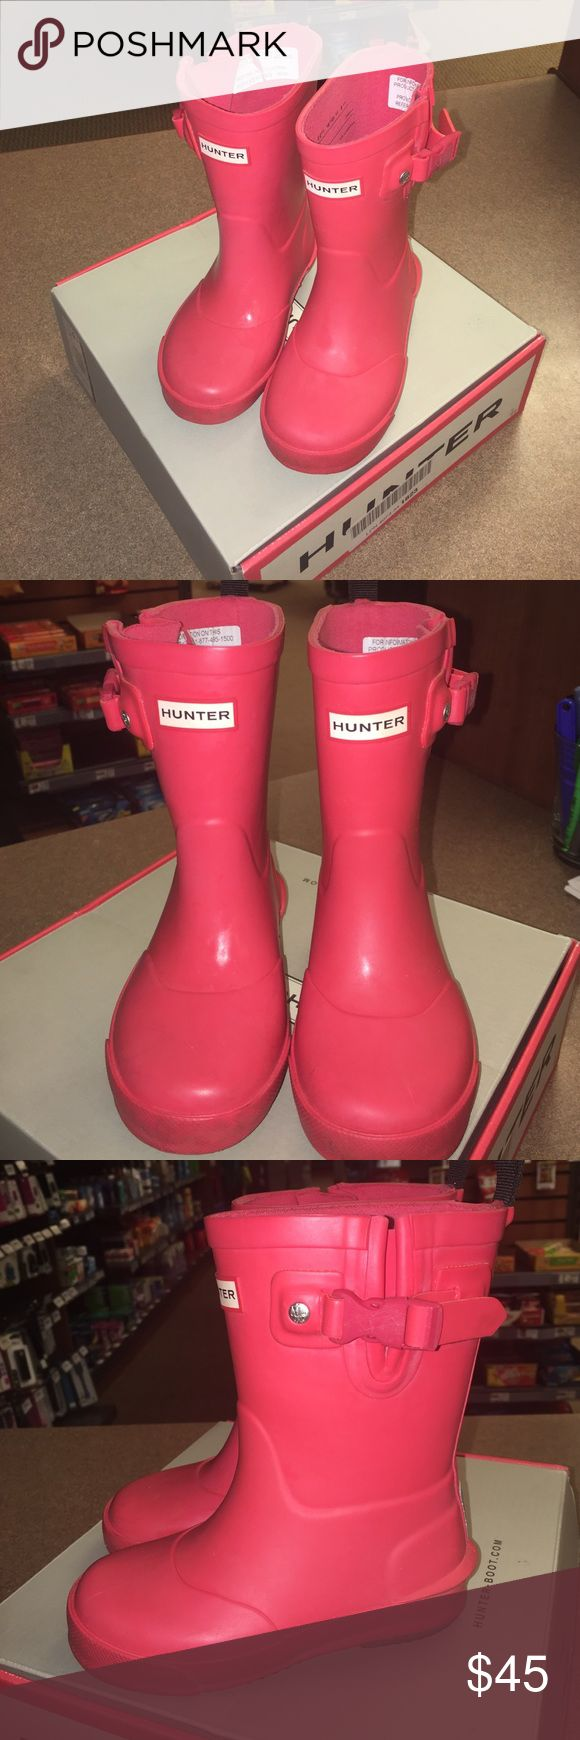 Pink Hunter Rain Boots KIDS Pink Hunter rain boots. Previously worn a few times. Fantastic condition. In original box. Kids size 8 Hunter Boots Shoes Winter & Rain Boots